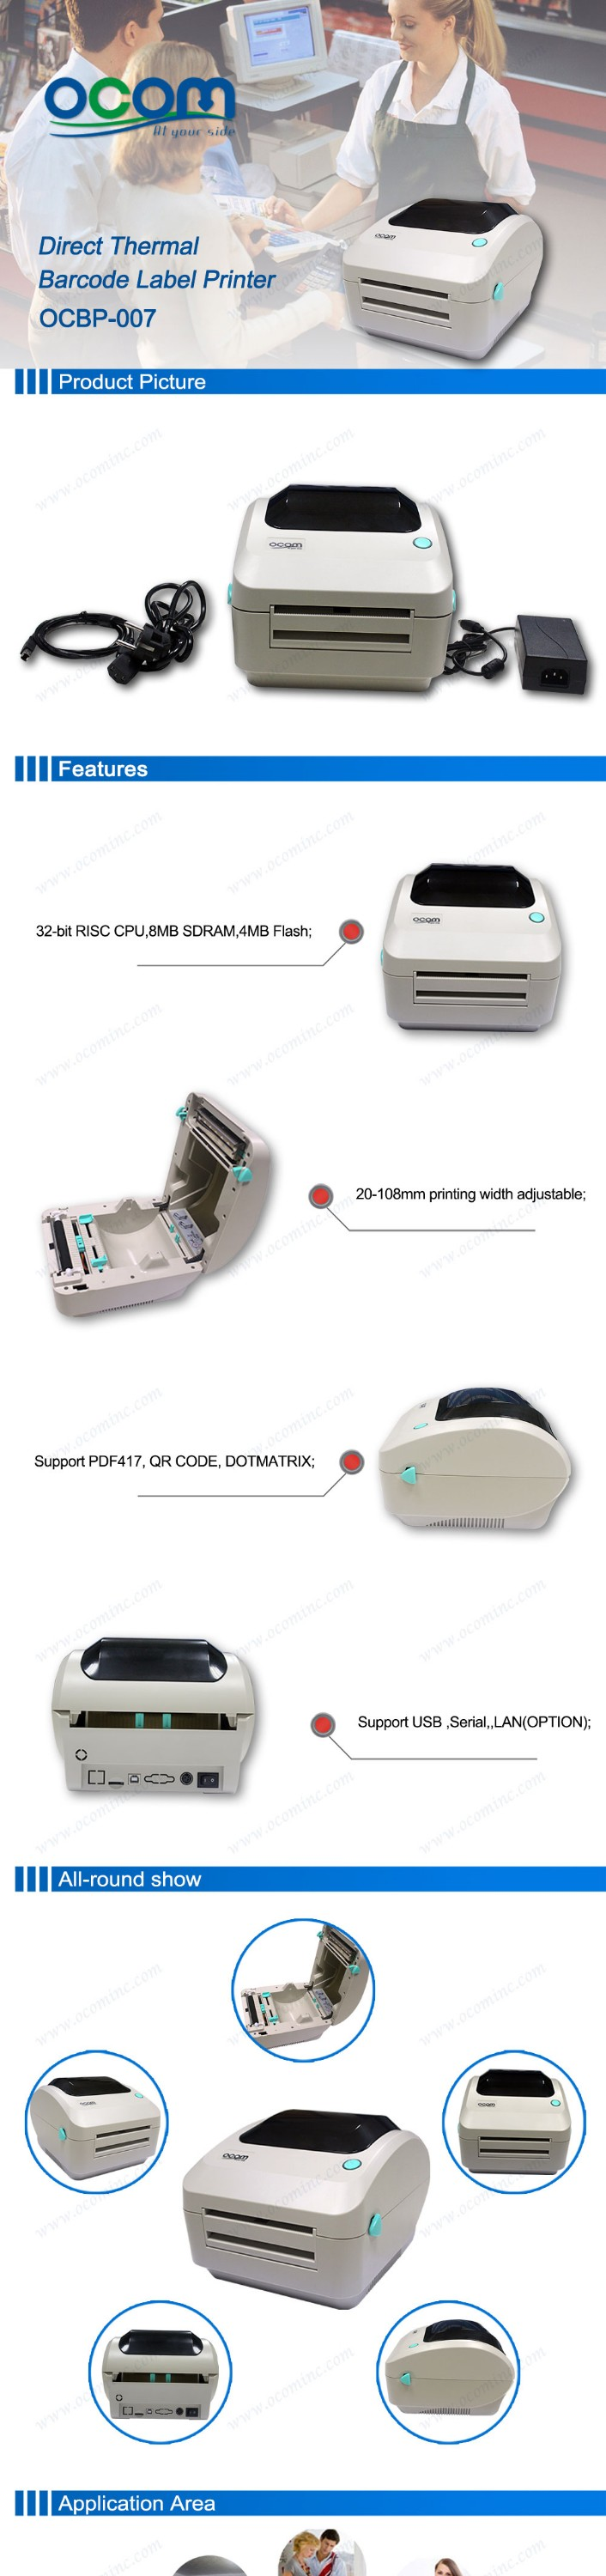 OCBP-007: cheap price 4 inch thermal barcode sticker printer dealers similar with godex or argox